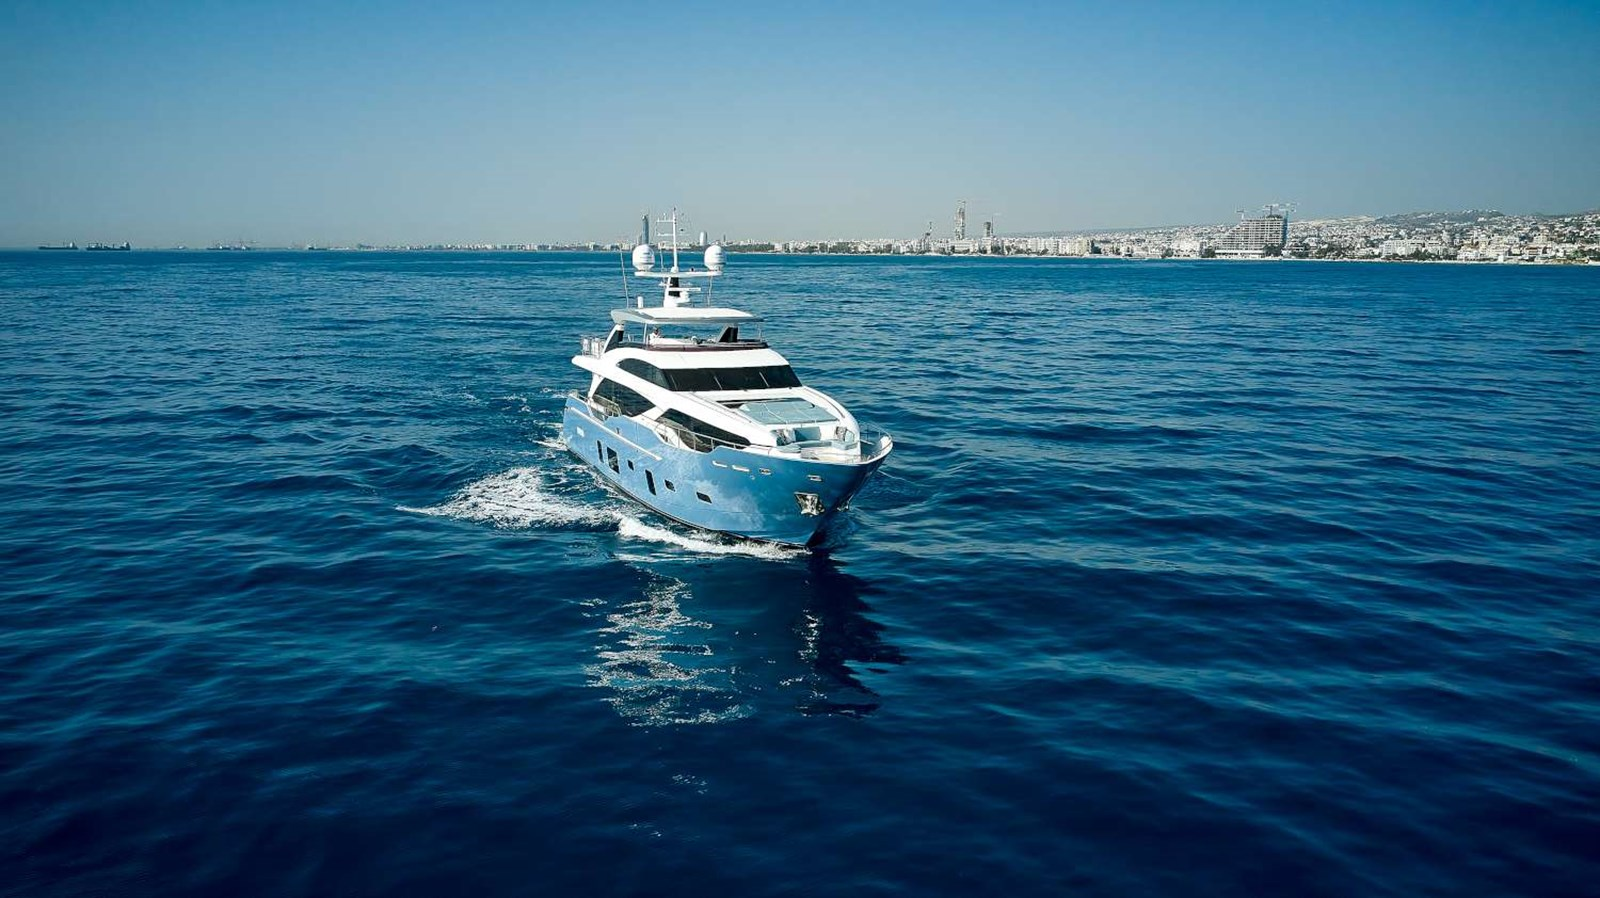 DJI_0318- Marzena gae of thrones editorial Hallelujah 2019 PRINCESS YACHTS 30M Motor Yacht 2927507